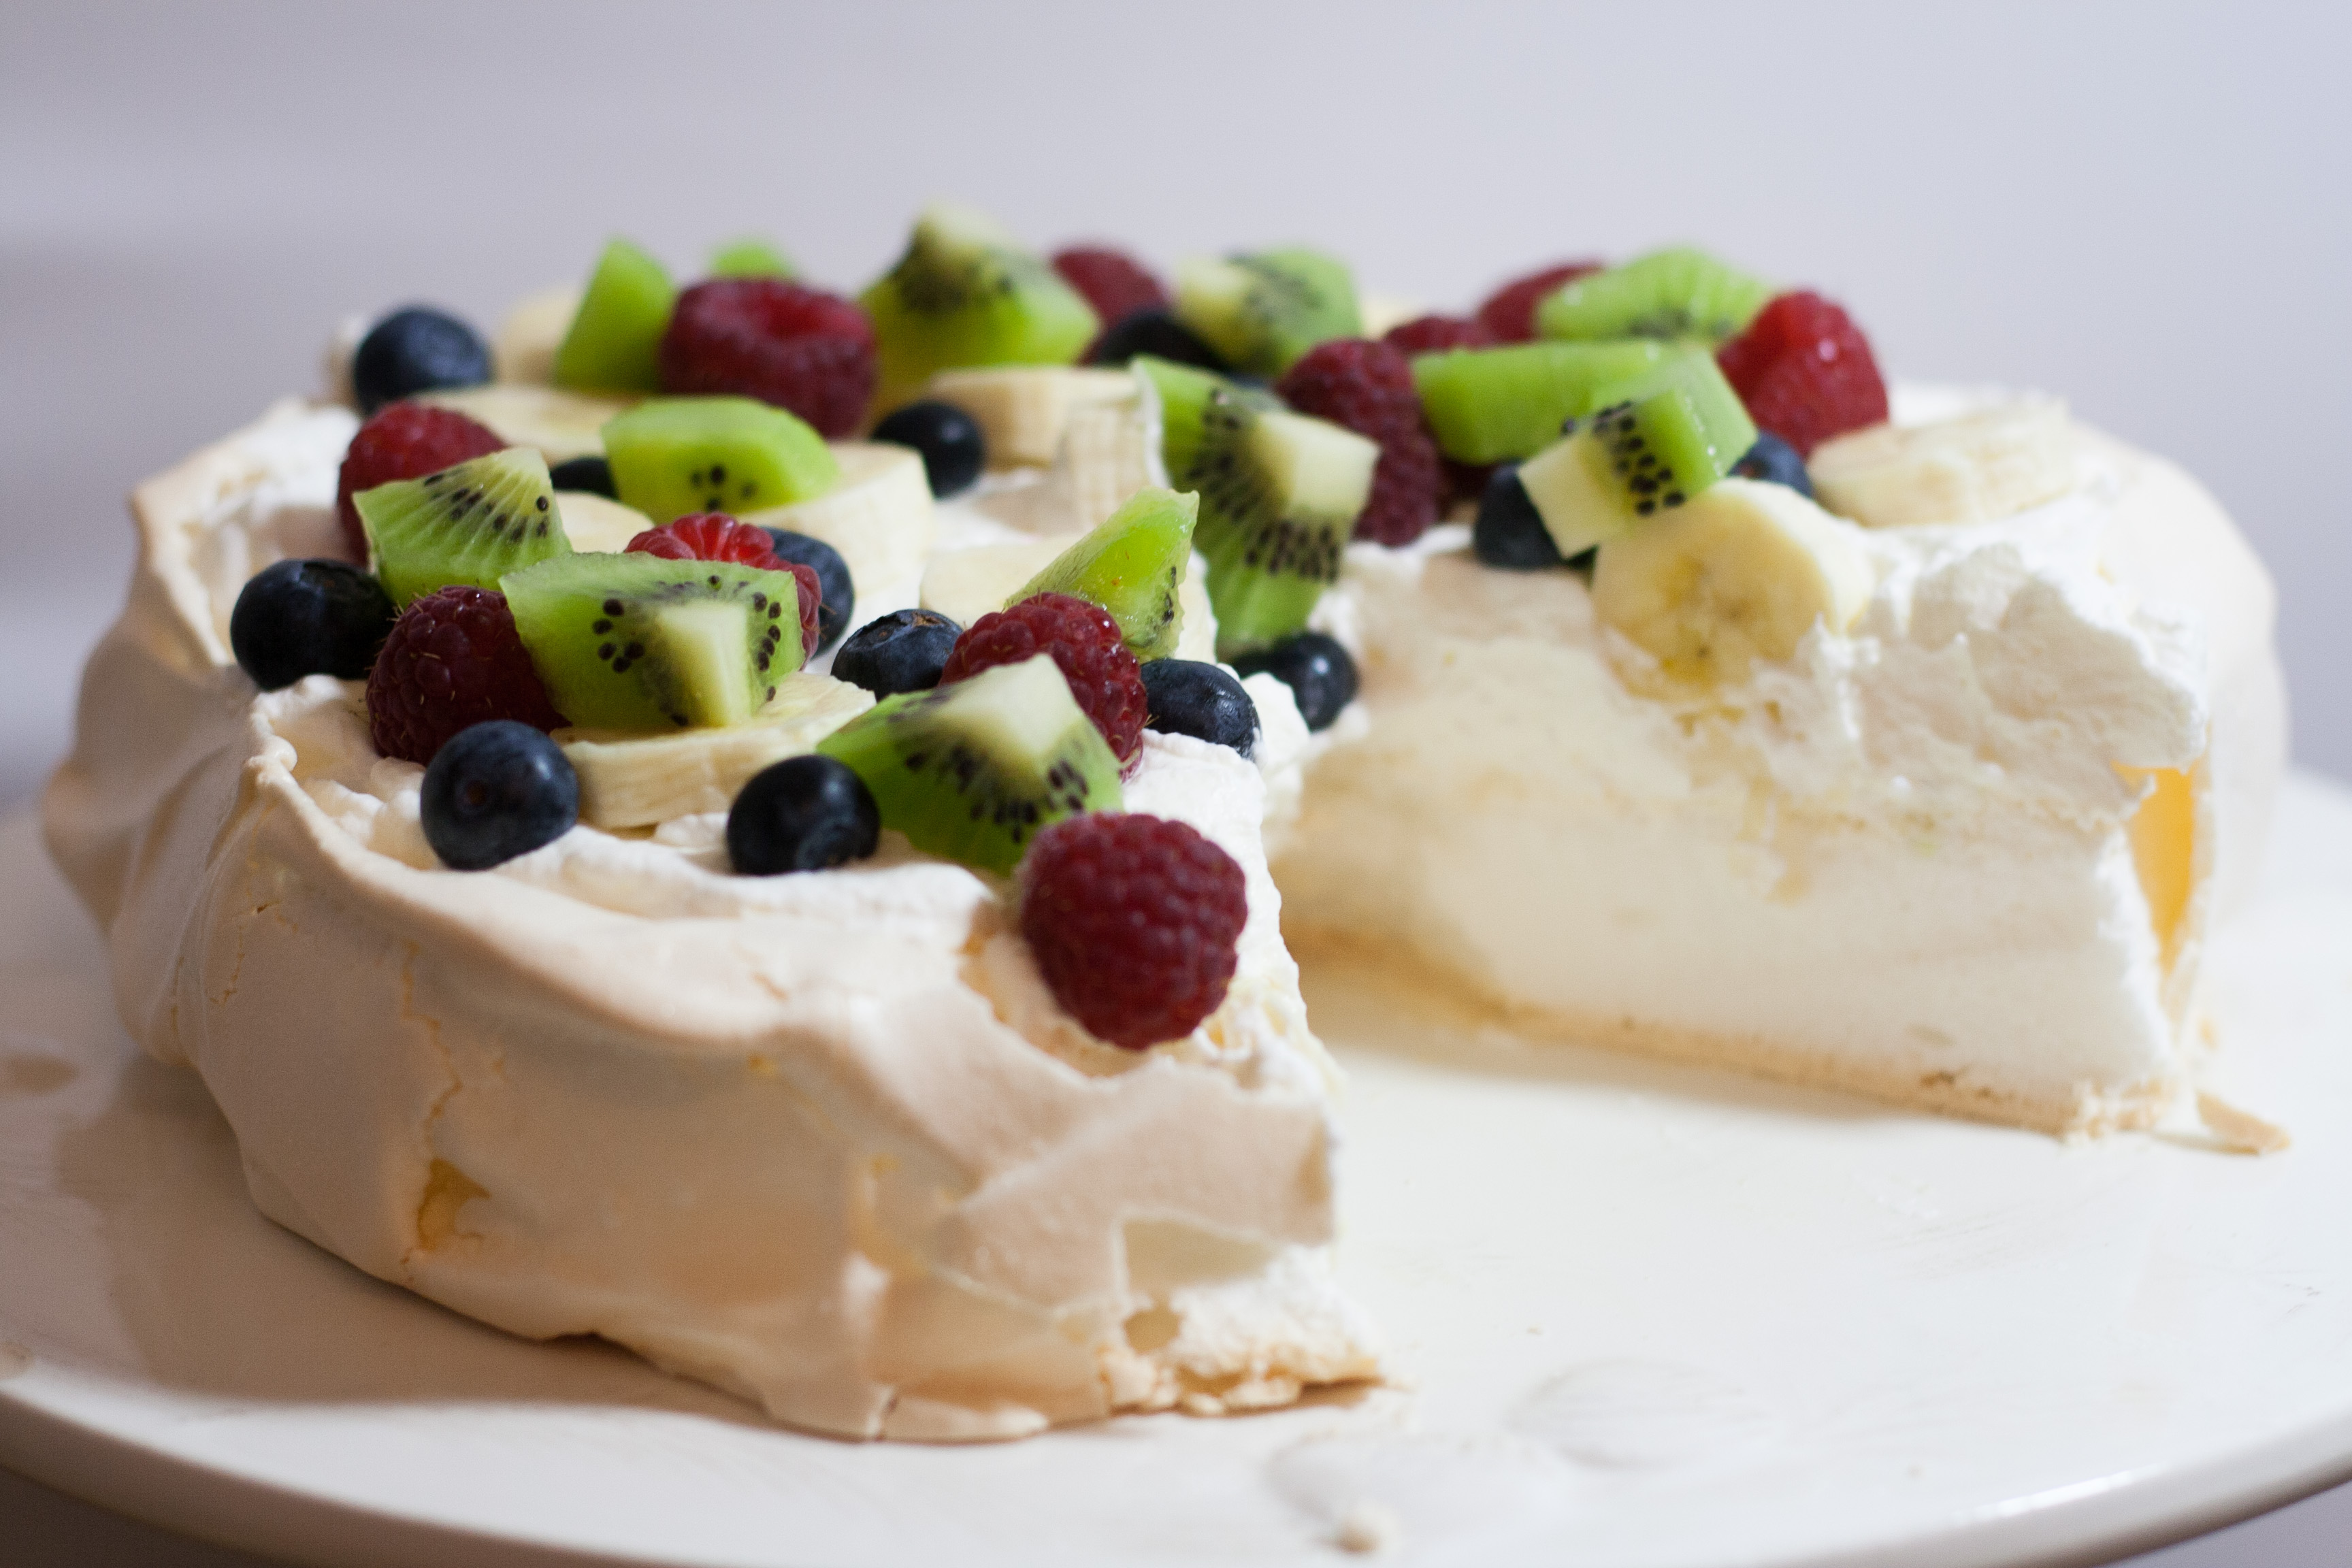 pavlova made right will be crispy on the outside and soft and fluffy ...